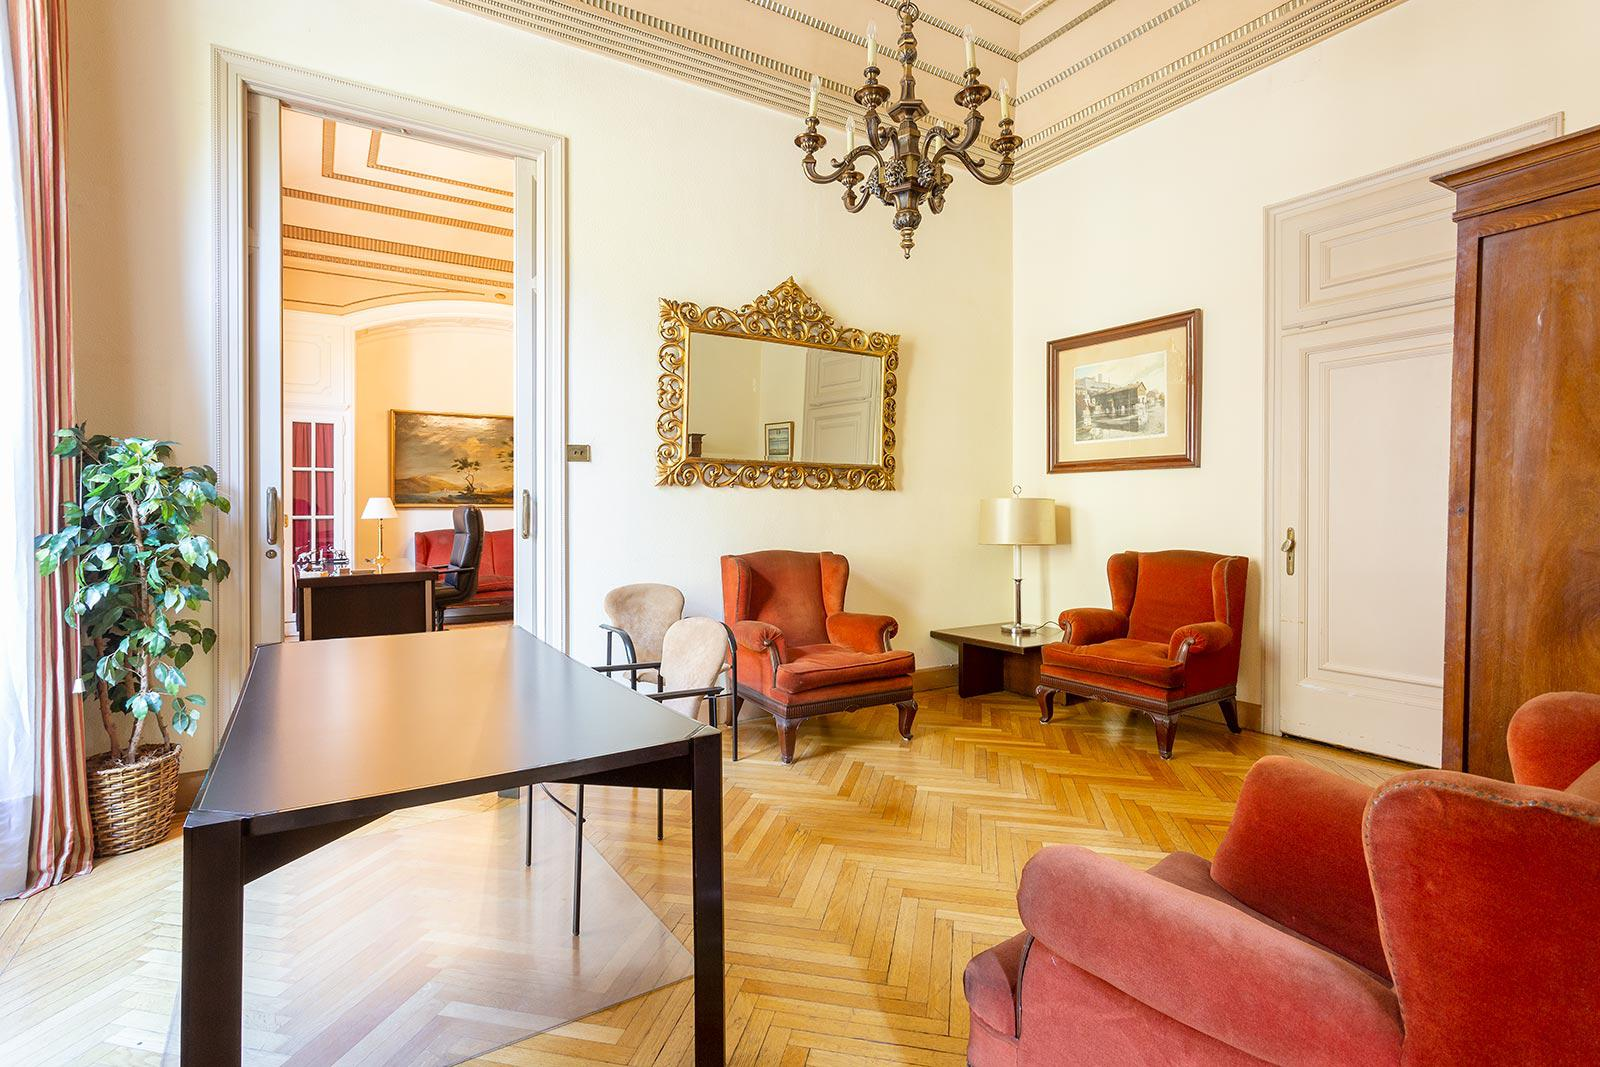 214993 Apartment for sale in Eixample, Dreta Eixample 4